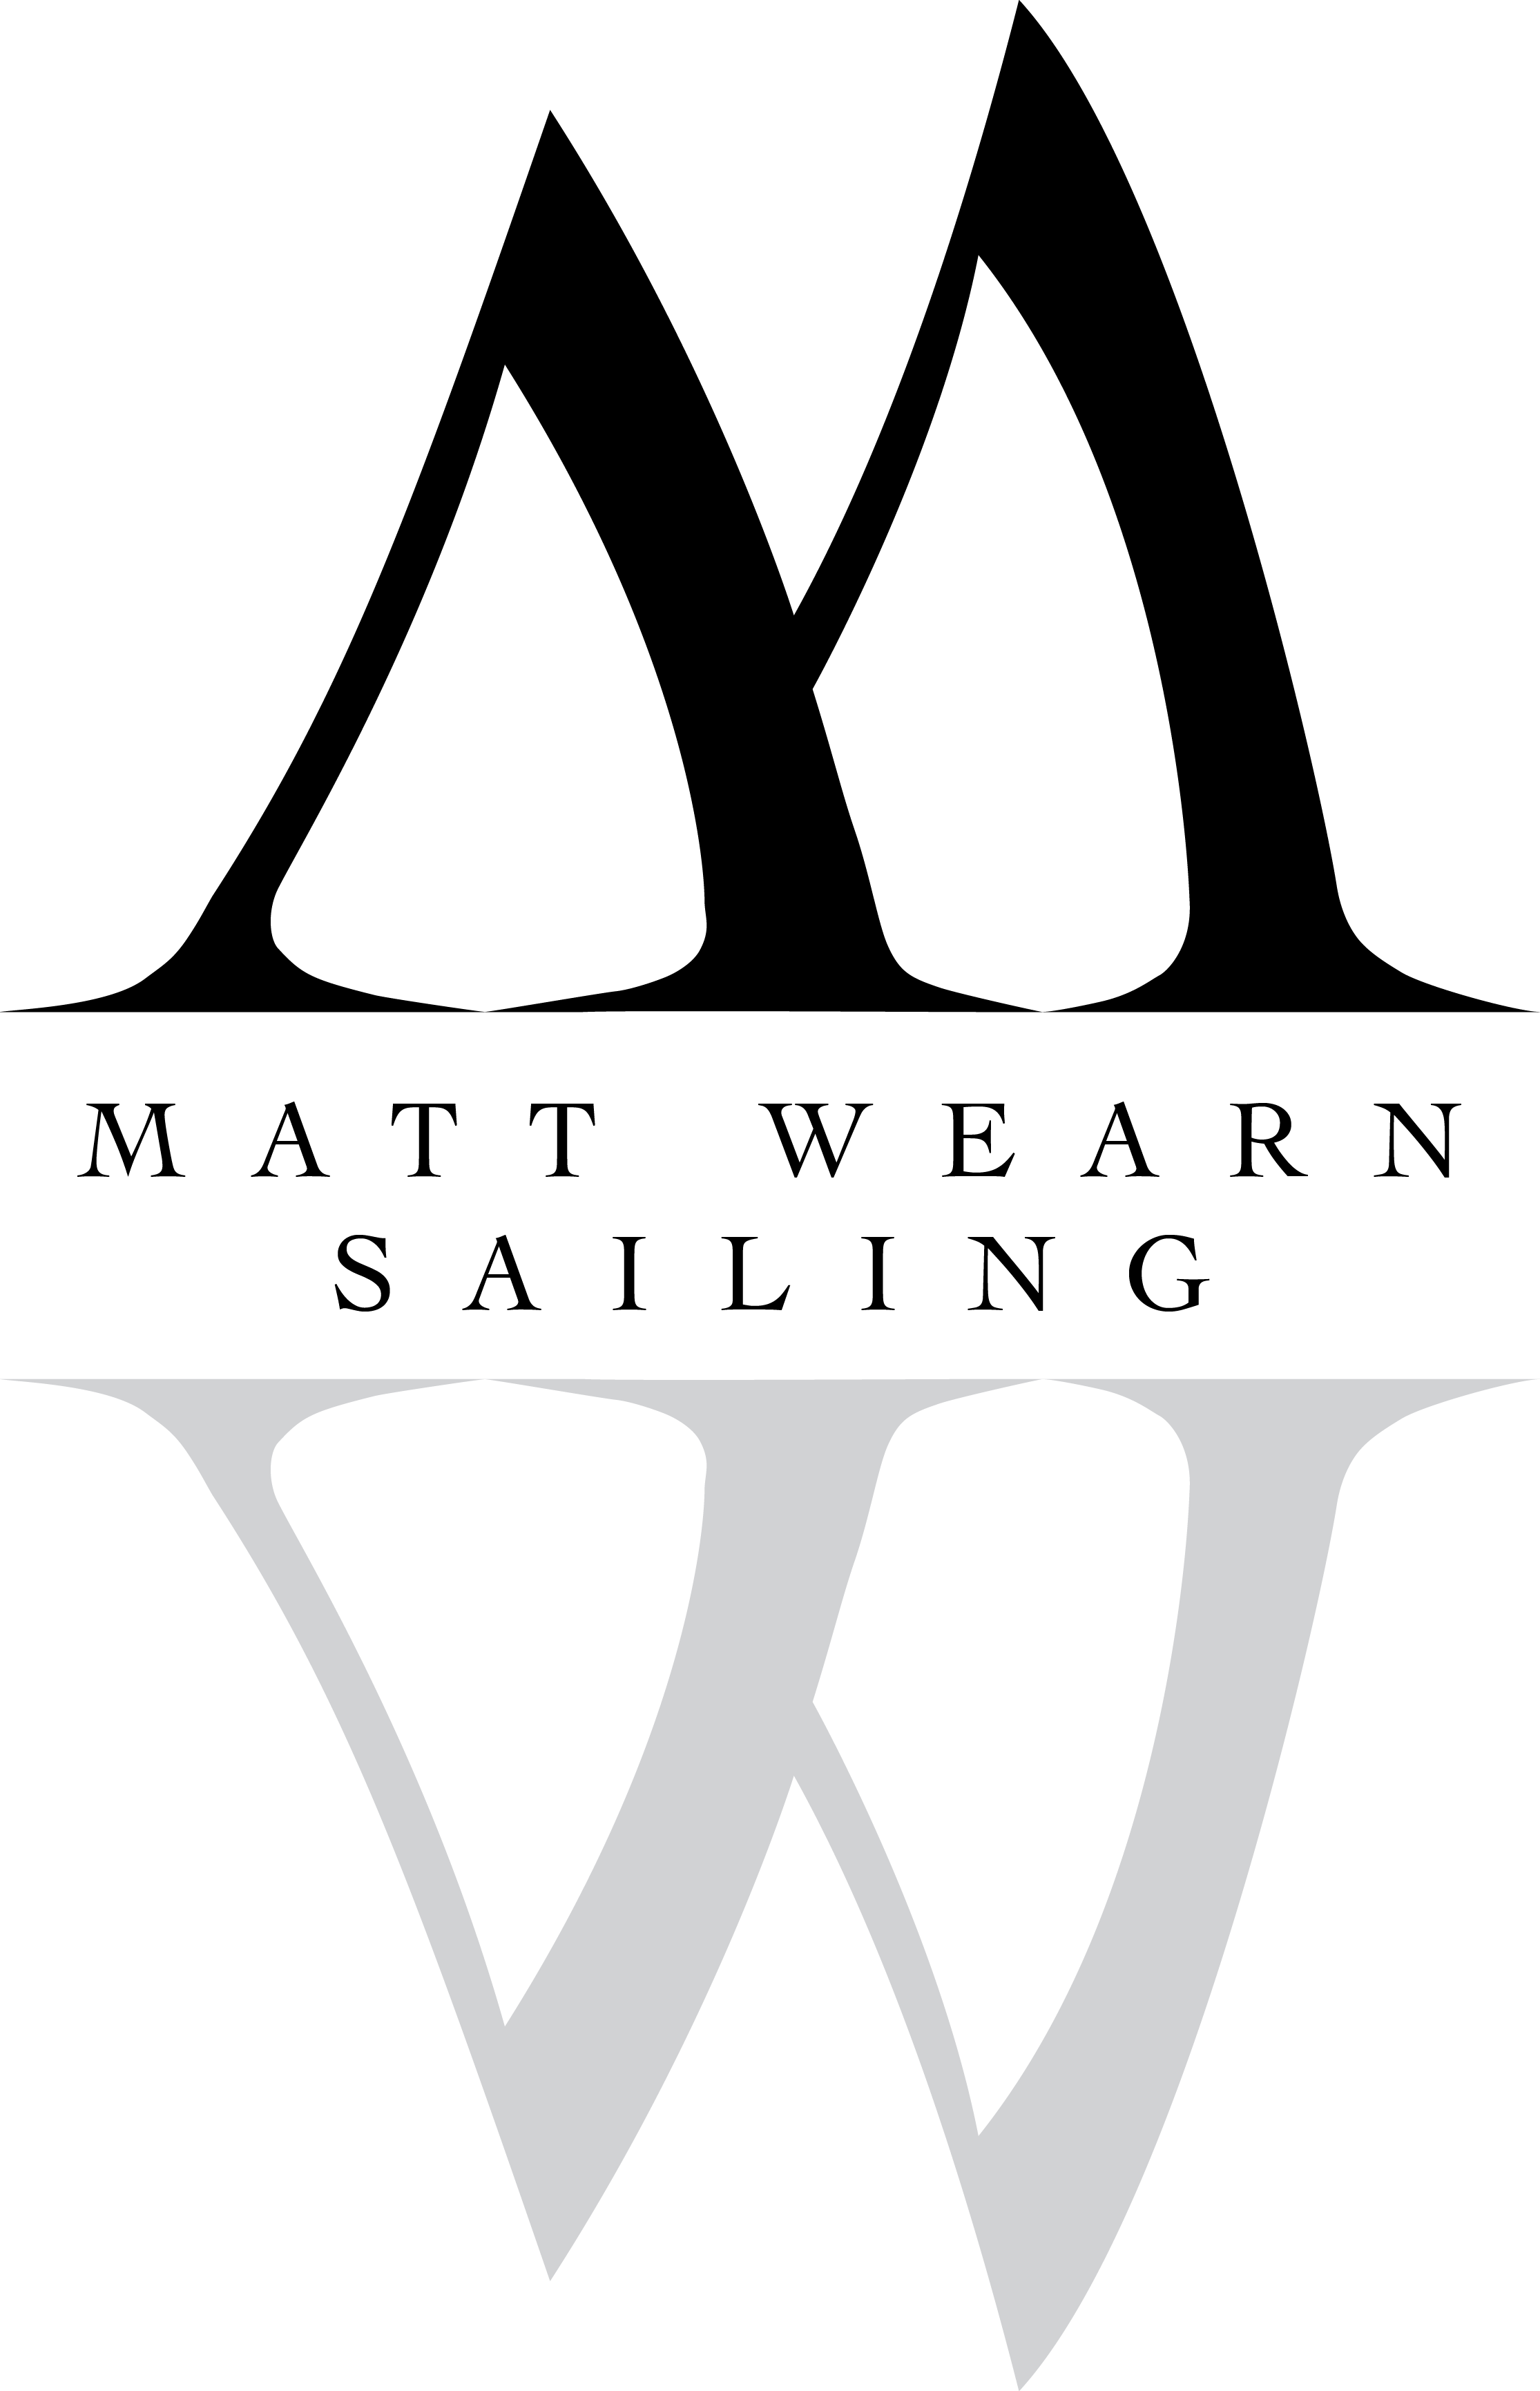 matt-wearn-logo.png